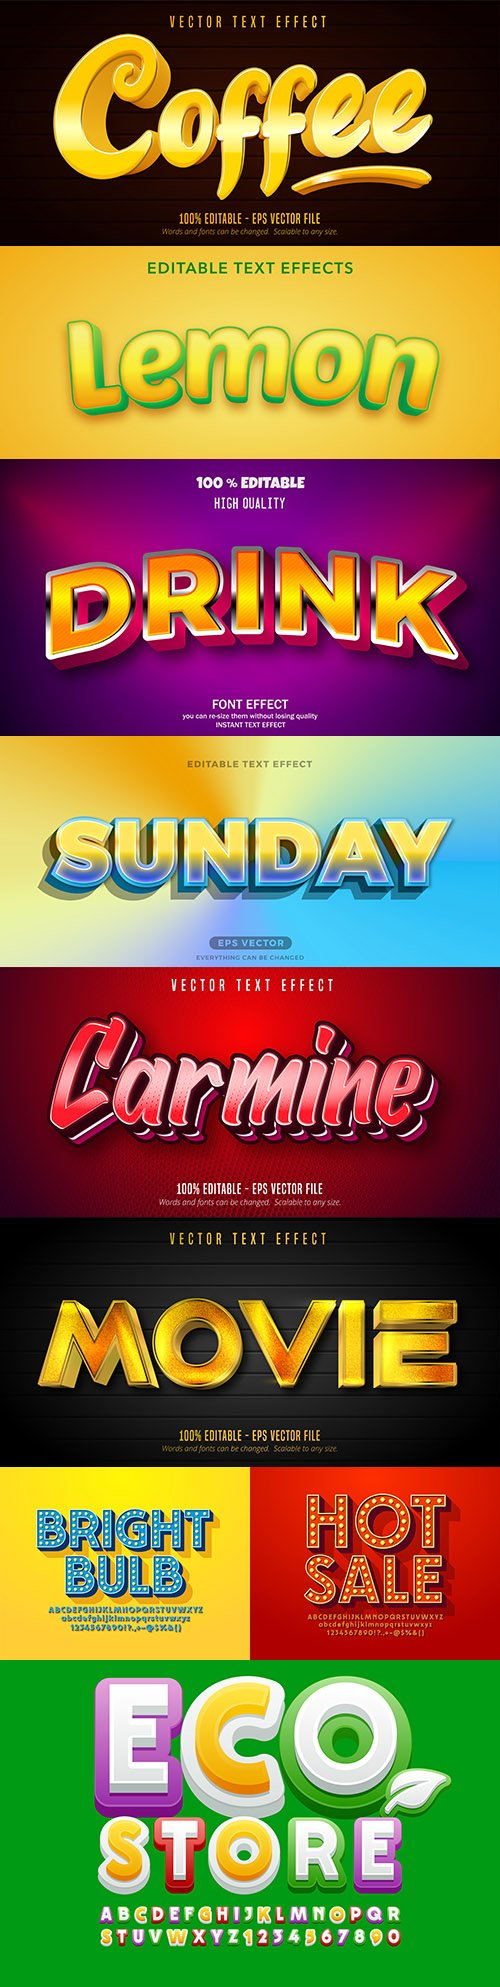 Editable font effect text collection illustration design 203